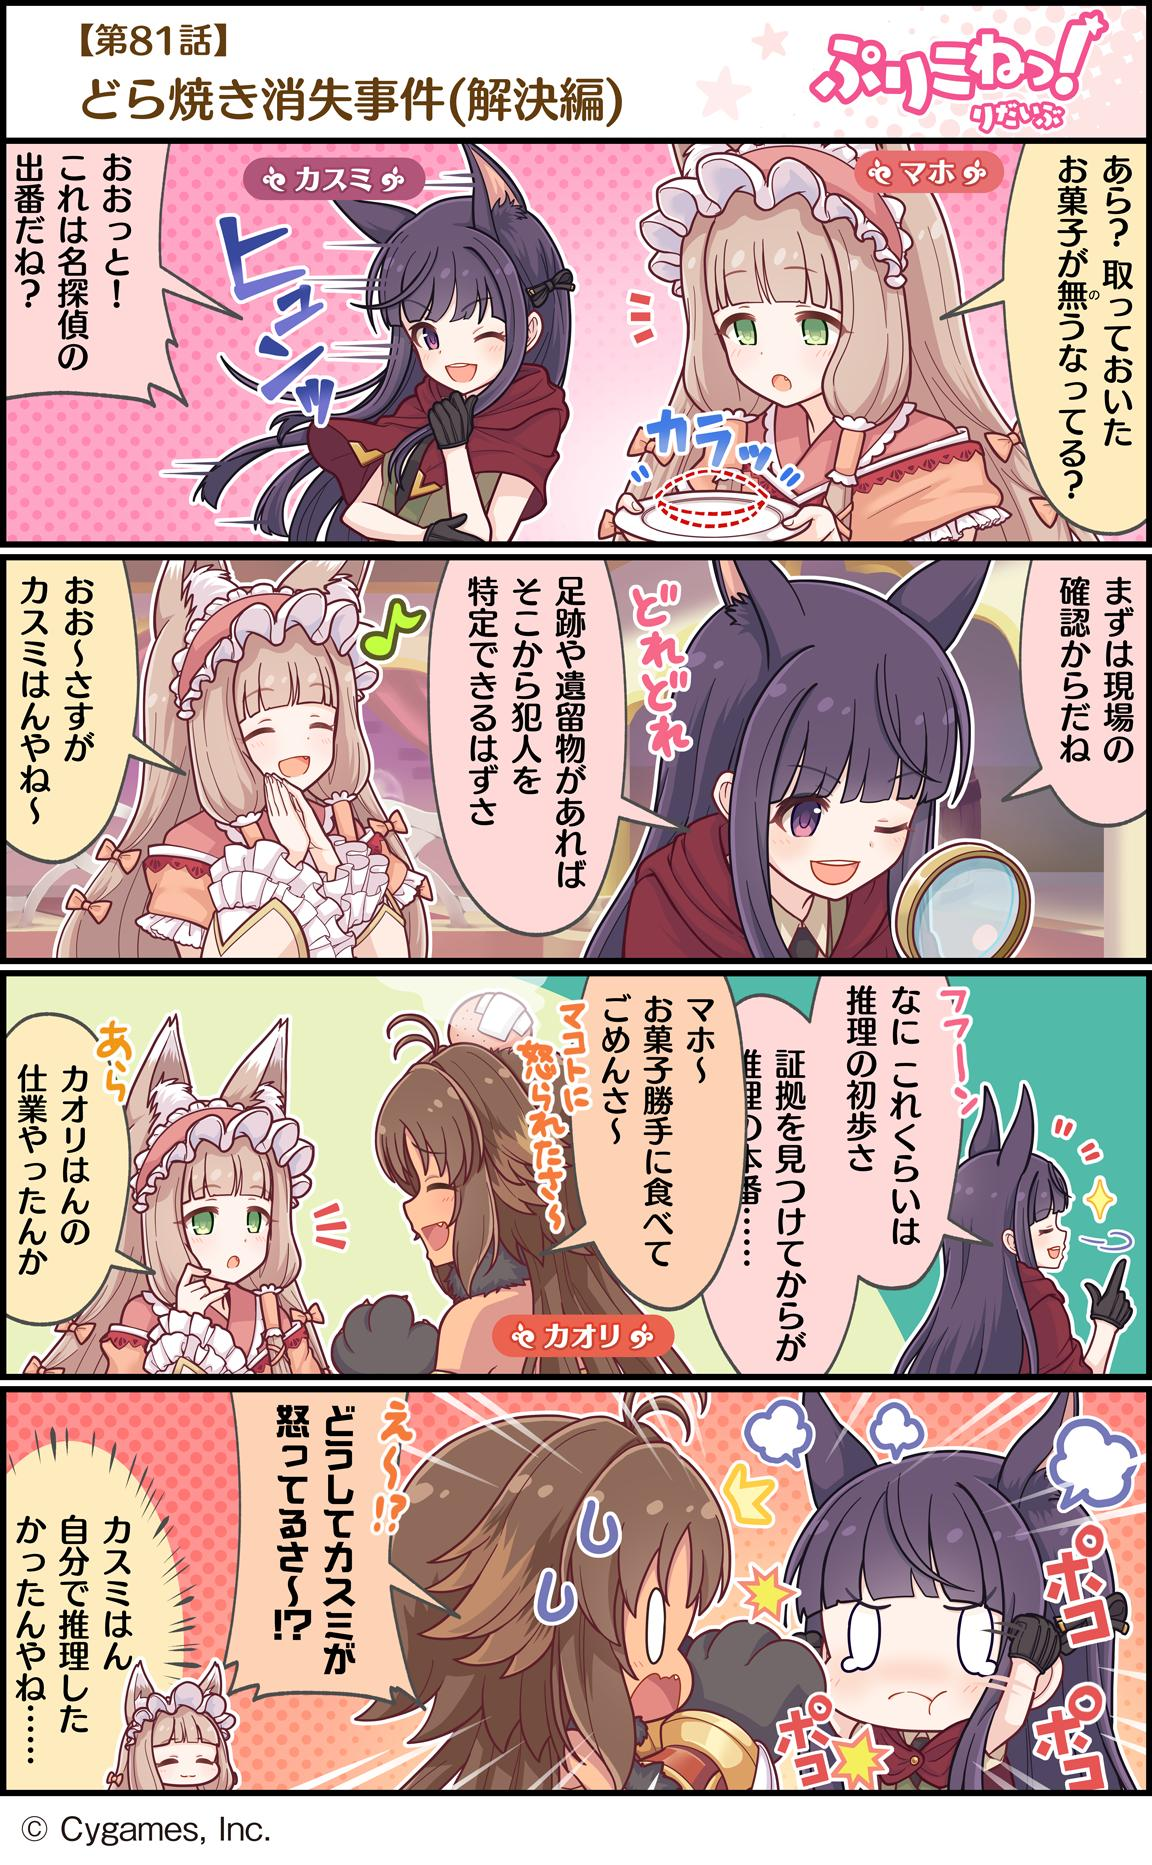 3girls 4koma animal_ears bedroom brown_hair closed_eyes comic commentary_request cygames dark_skin gloves green_eyes hands_clasped head_bump highres himemiya_maho kirihara_kasumi kyan_kaori long_hair magnifying_glass motion_lines multiple_girls official_art one_eye_closed open_mouth own_hands_together plate pout princess_connect! princess_connect!_re:dive purple_hair translation_request